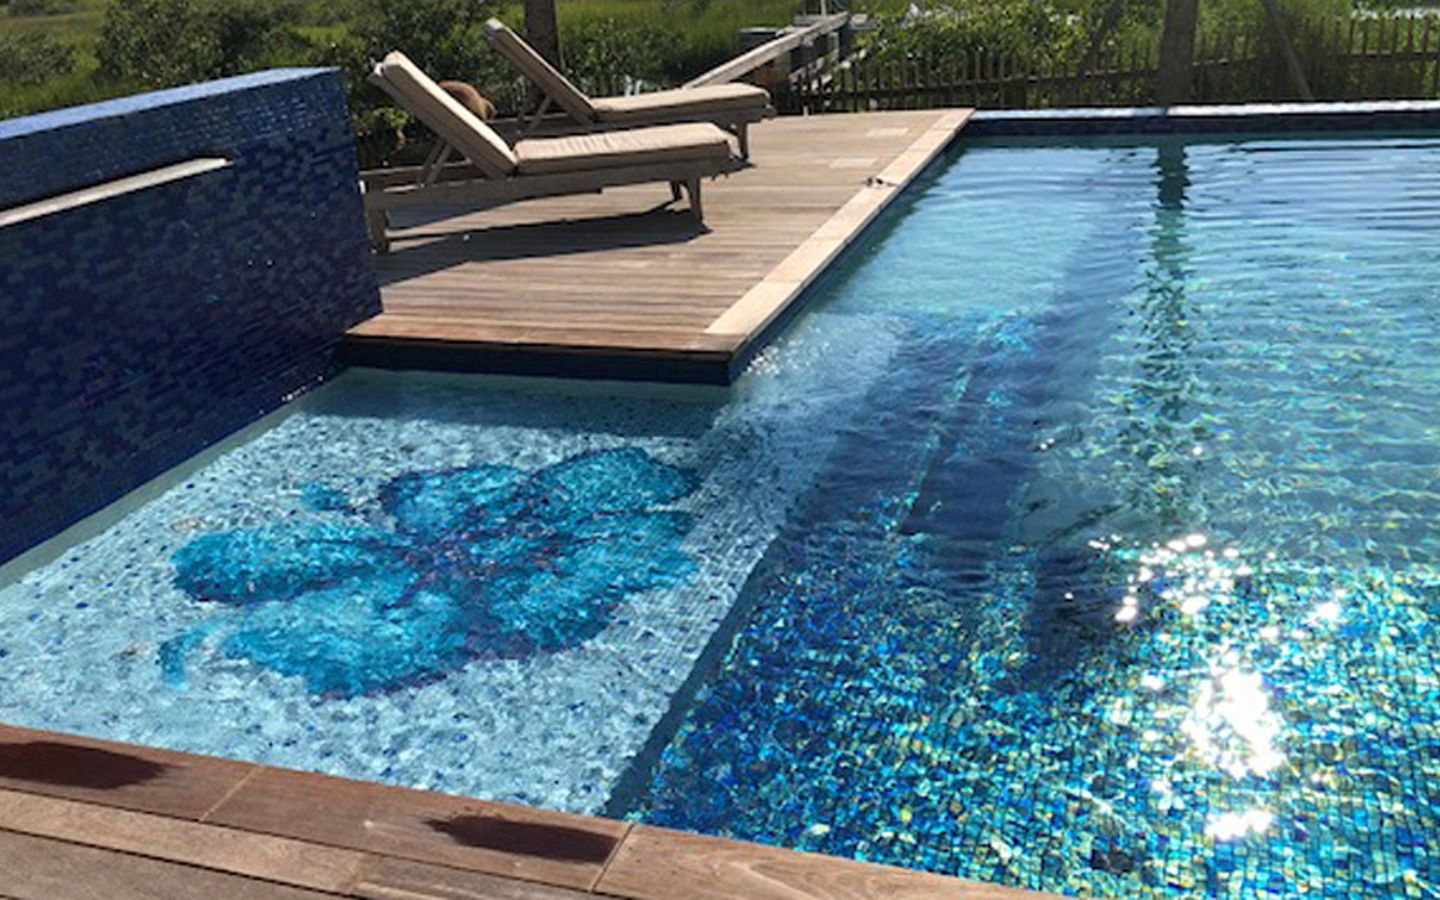 Bisazza Fiore 94 Flower 20mm Glass Mosaic Tile Swimming Pool